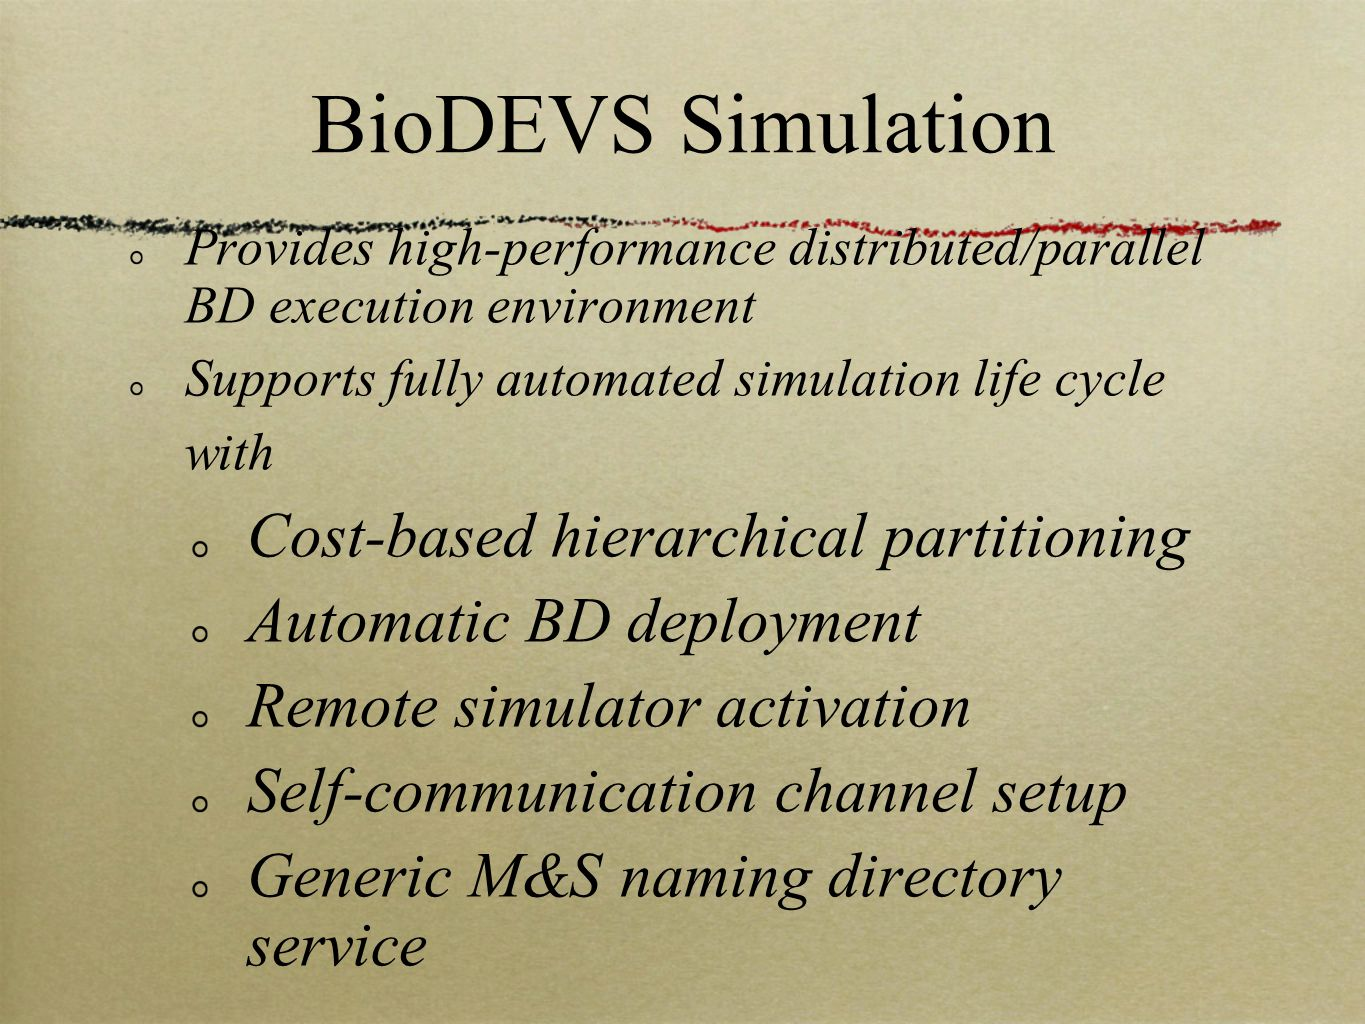 BioDEVS Simulation Provides high-performance distributed/parallel BD execution environment Supports fully automated simulation life cycle with Cost-based hierarchical partitioning Automatic BD deployment Remote simulator activation Self-communication channel setup Generic M&S naming directory service